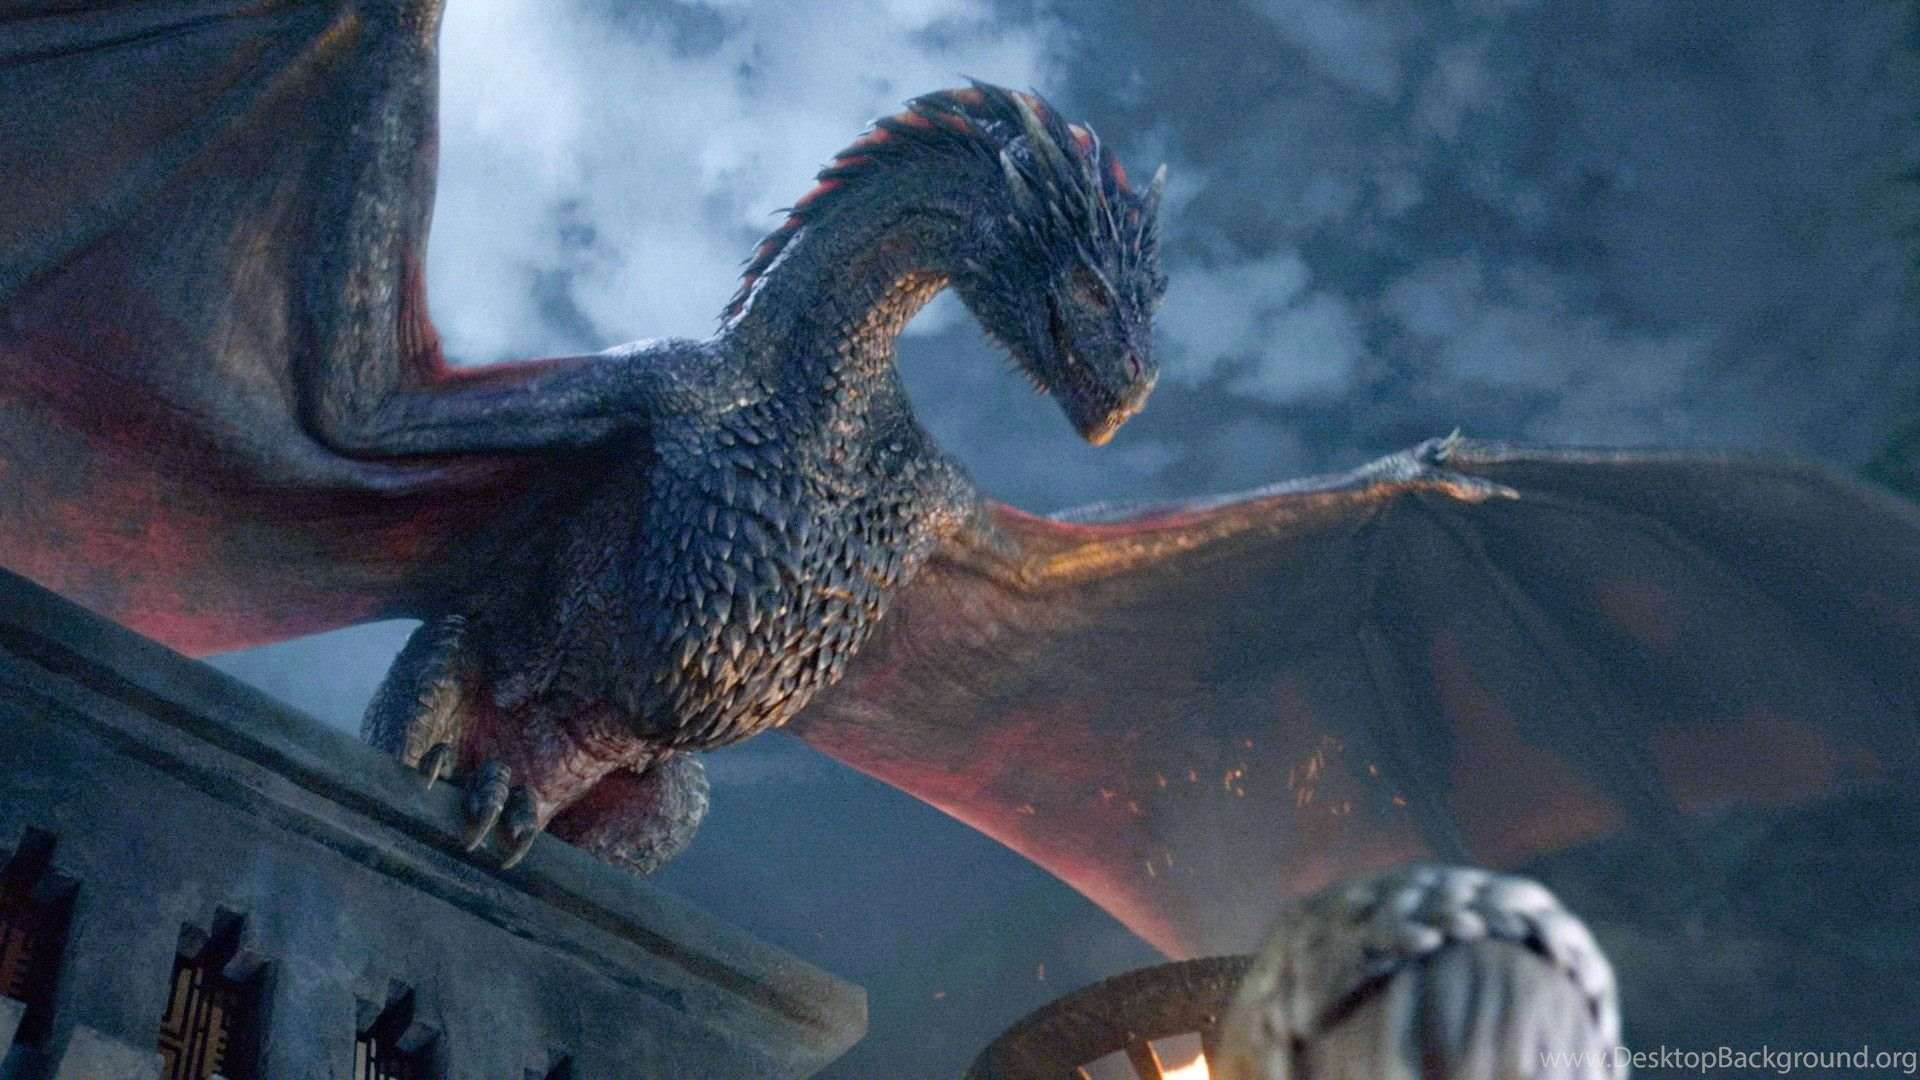 Game Of Thrones Dragon Wallpapers Dreamlovewallpapers